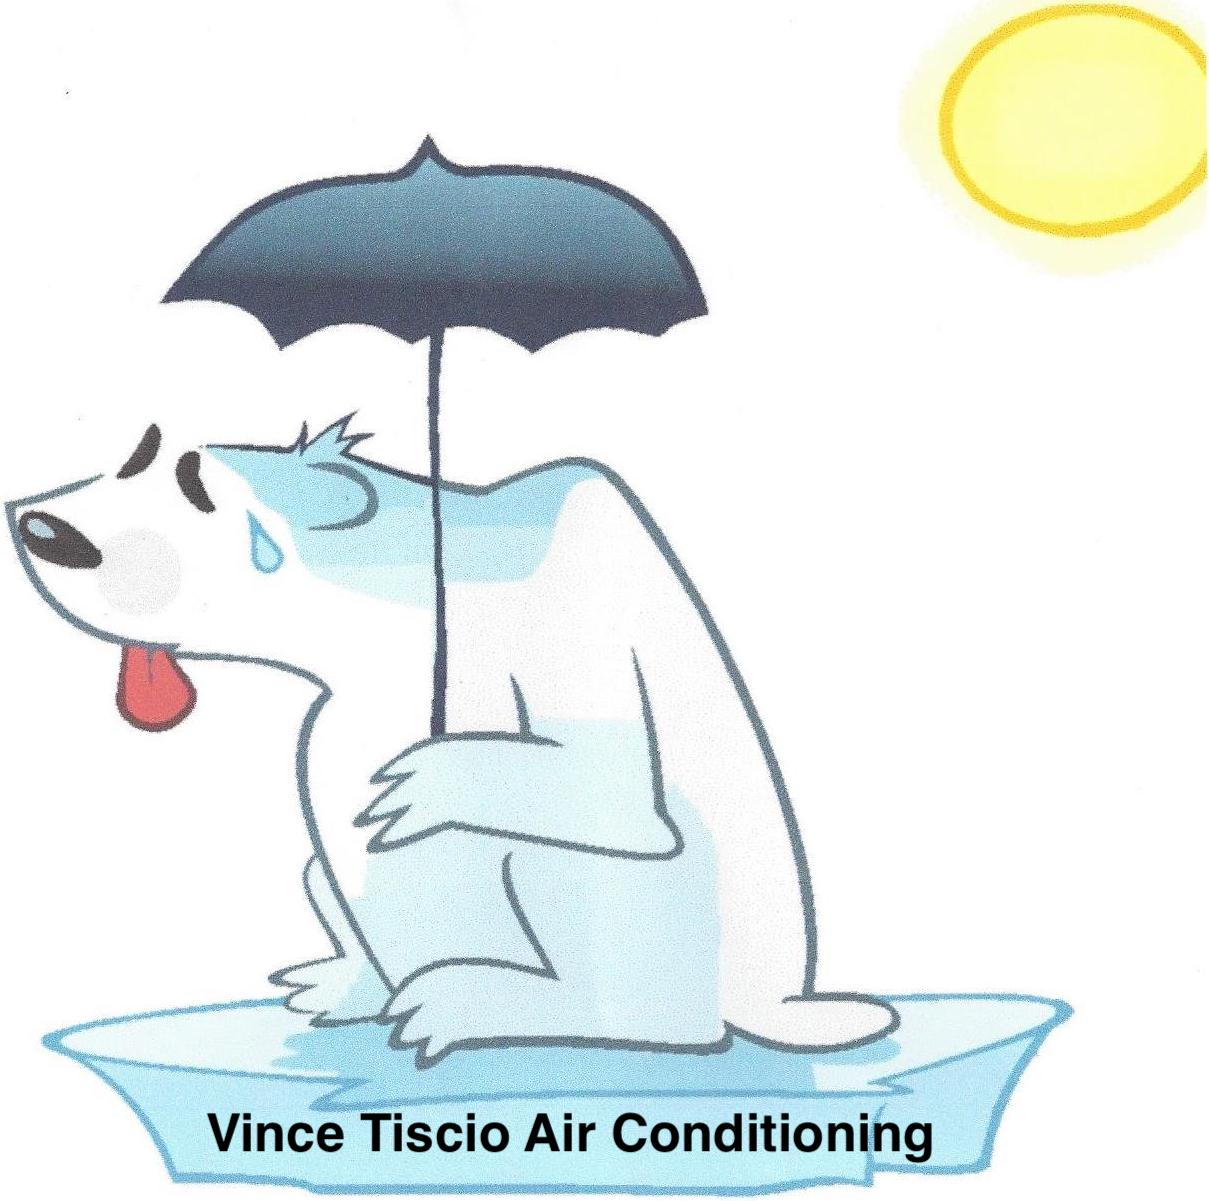 Vince Tiscio Air Conditioning